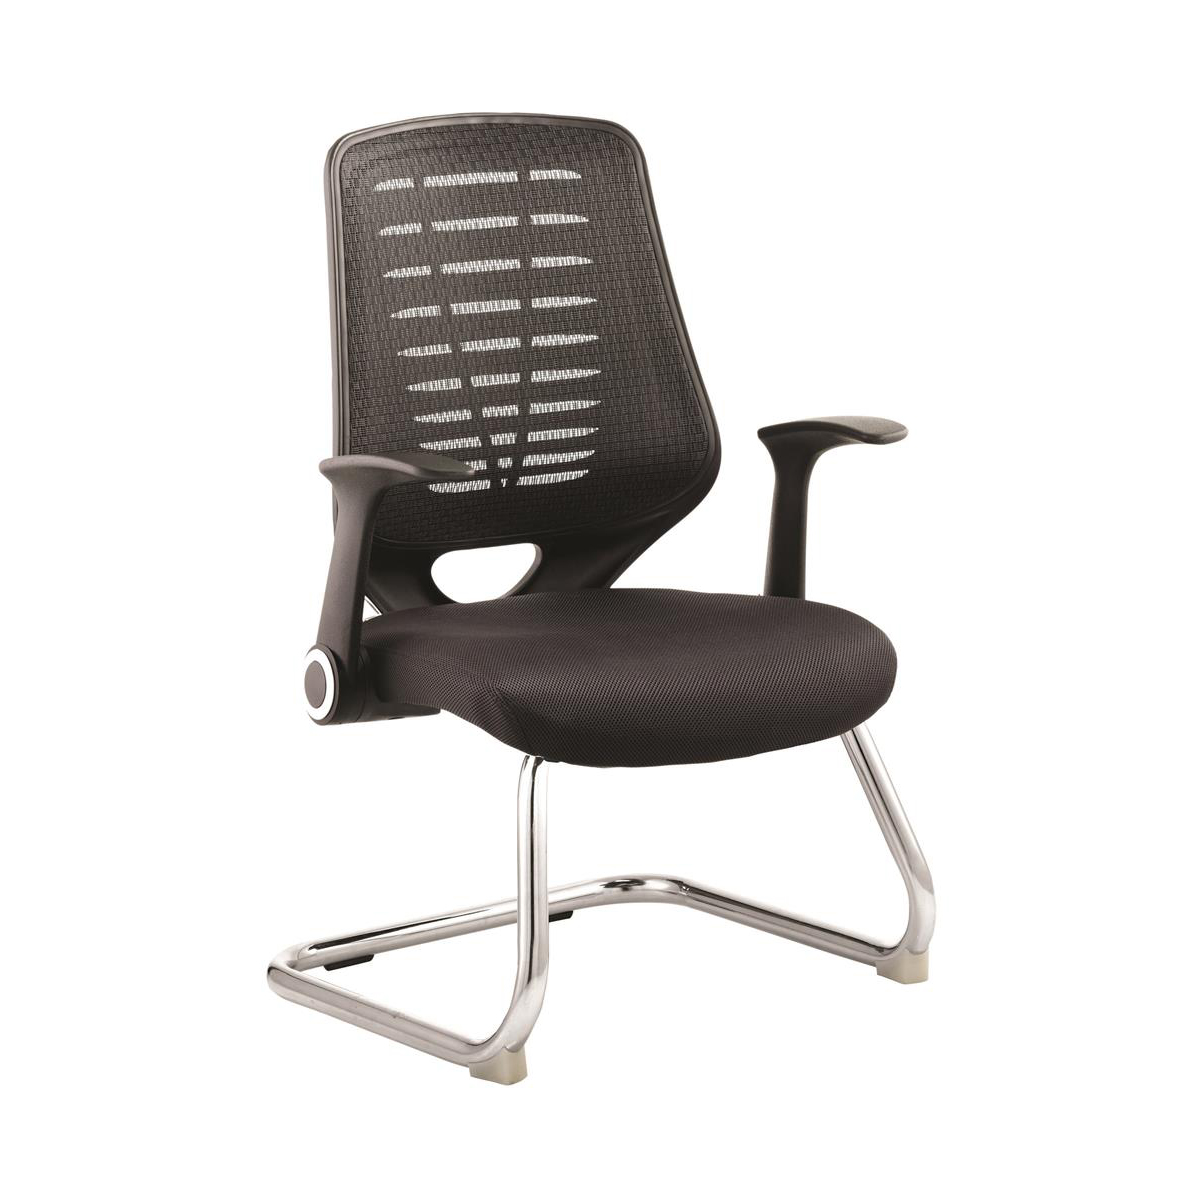 Sonix Relay Mesh Visitors Chair Black 500x490x440mm Ref BR000117